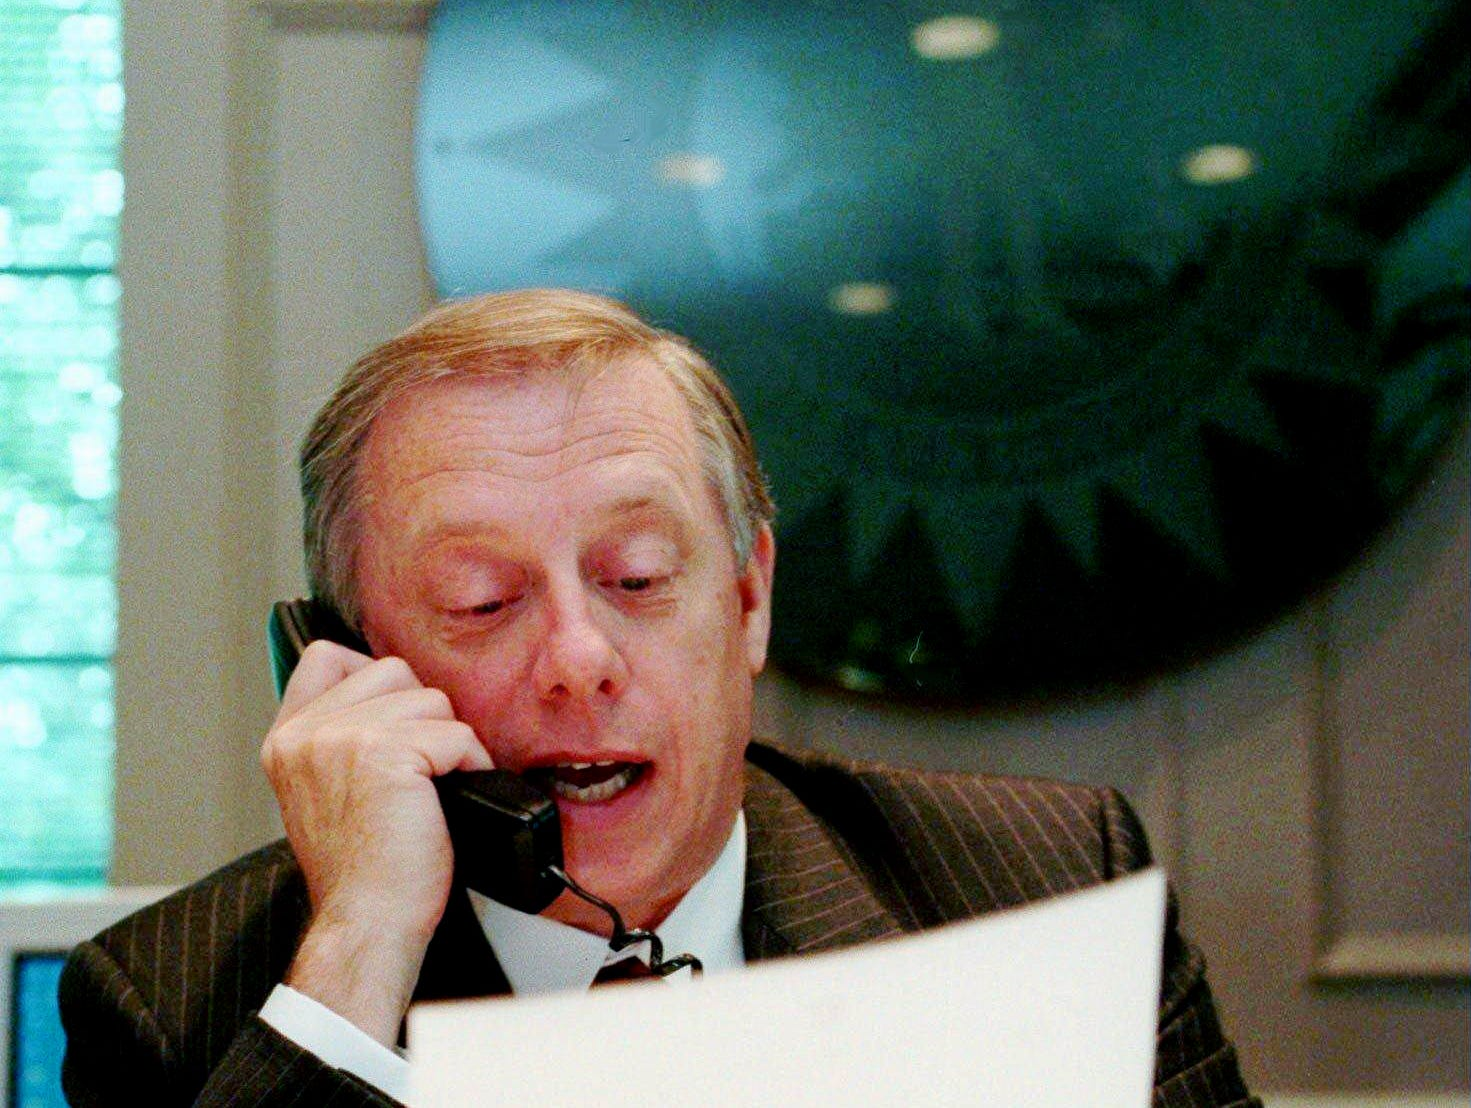 Metro Mayor Phil Bredesen looks over the letter he received Oct. 4, 1996 from NFL Commissioner Paul Tagliabue that approved the Houston Oilers' move from Texas to Tennessee. Receiving the letter means the city of Nashville can finally set the wheels in motion for the construction fo the team's new $292 million stadium. Work on the stadium has been stalled for several months because of a bill in the U.S. House of Representatives that would have regulated the movement of professional sports franchises.